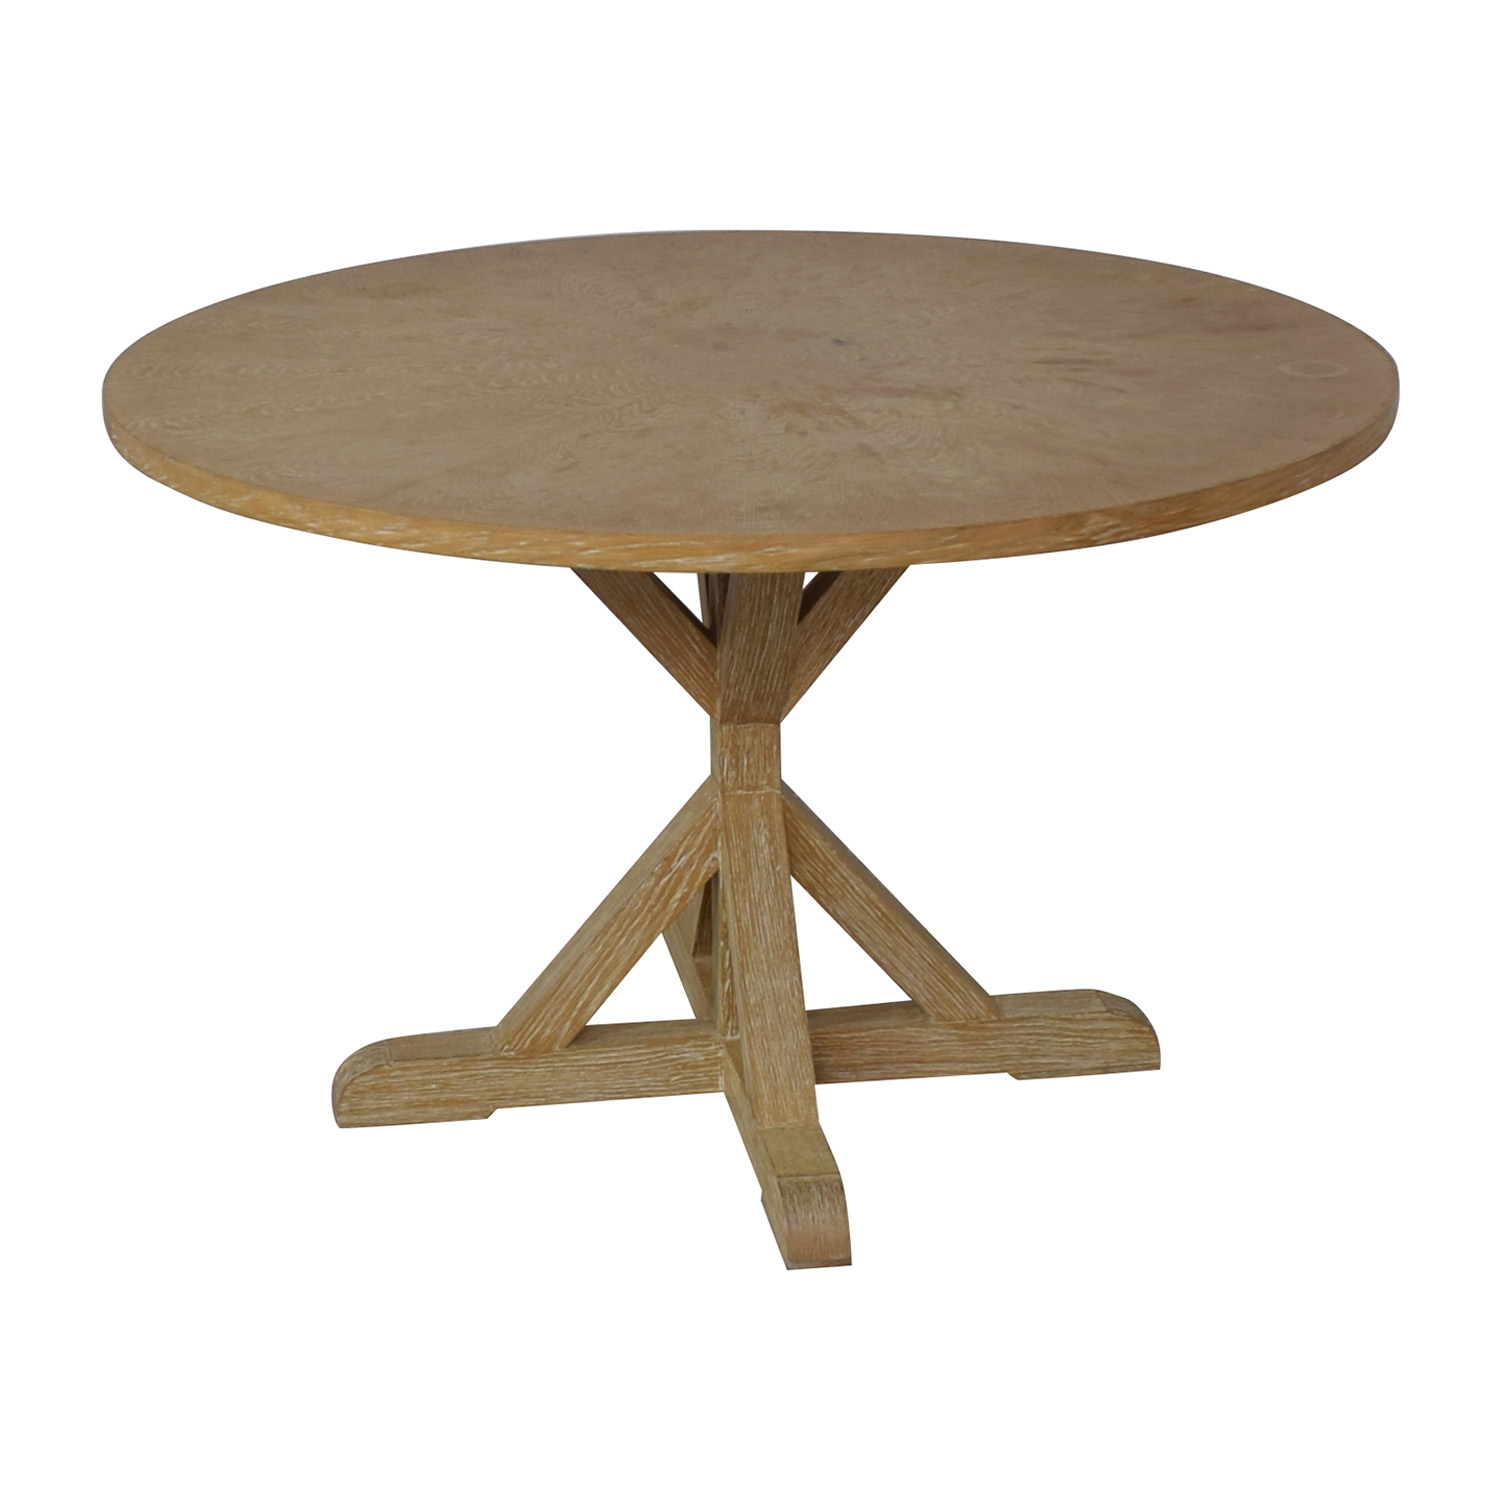 Birch Lane Birch Lane Peralta Dining Table for sale